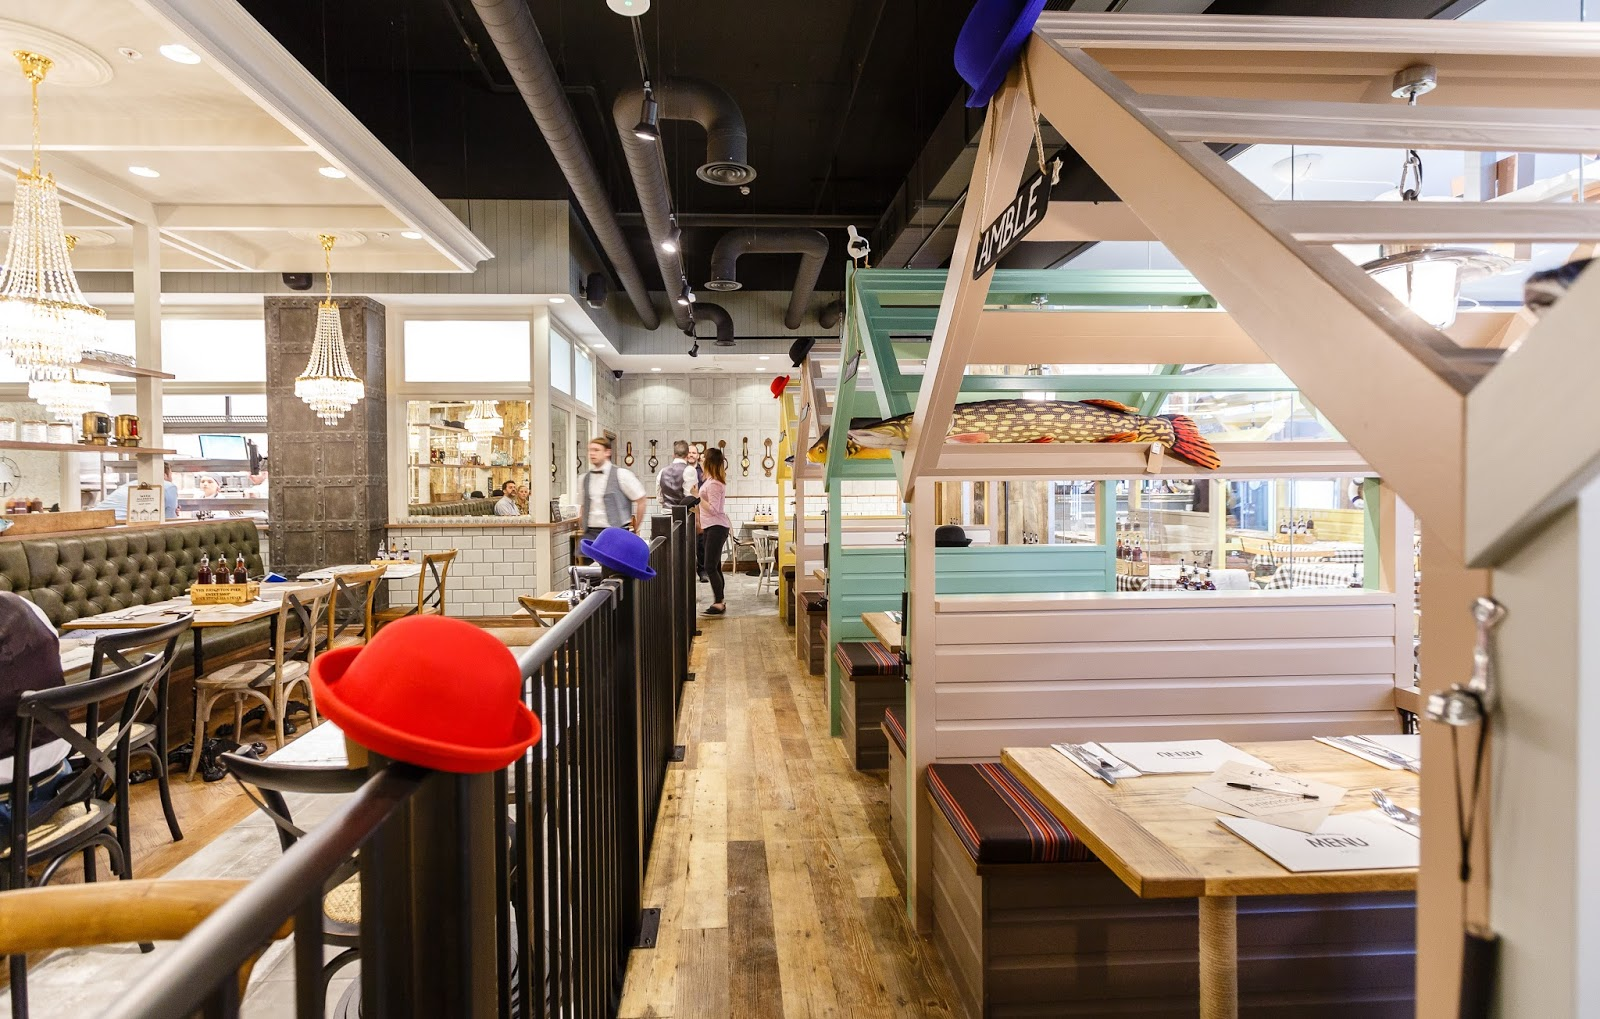 A guide to new restaurants opening in the new Grey's Quarter, intu Eldon Square including The Alchemist, Giraffe and Chaophraya